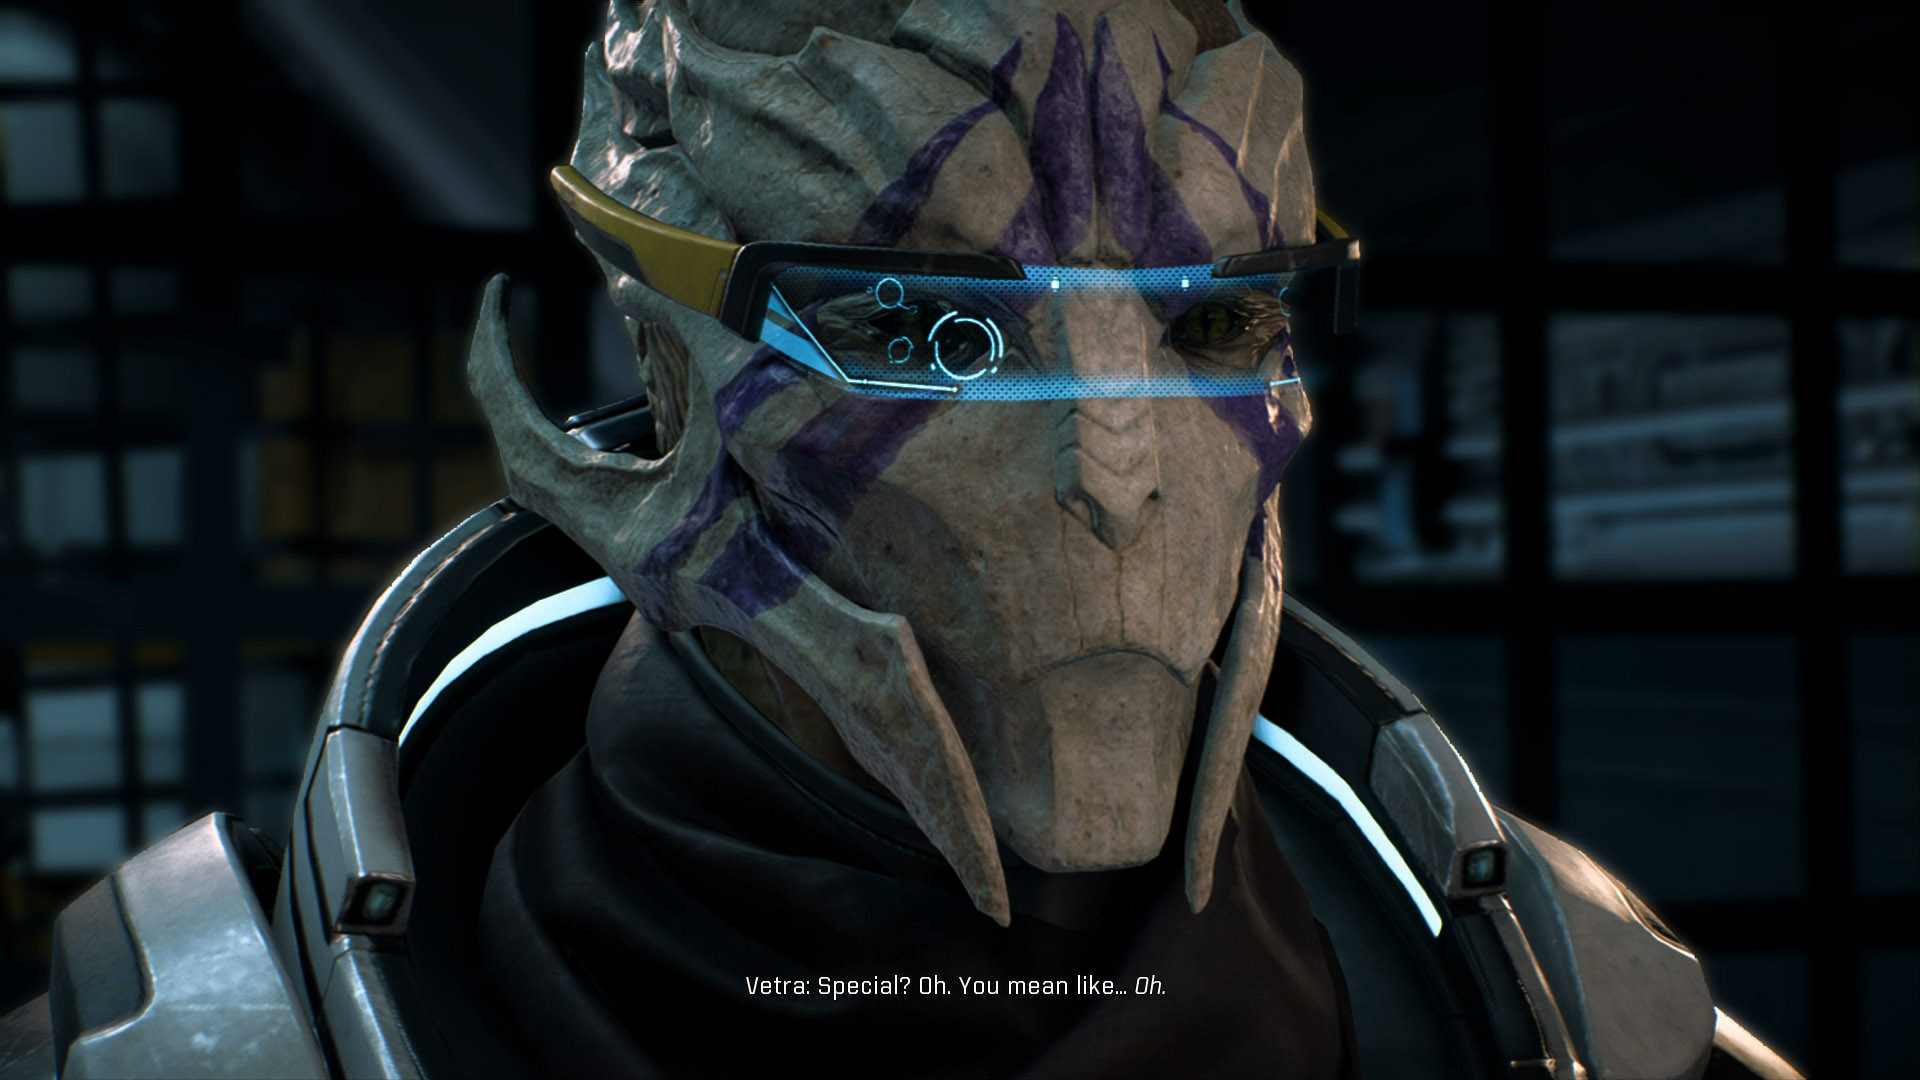 Vetra Will Join Your Squad In Mass Effect Andromeda As You Approach The Tempest For